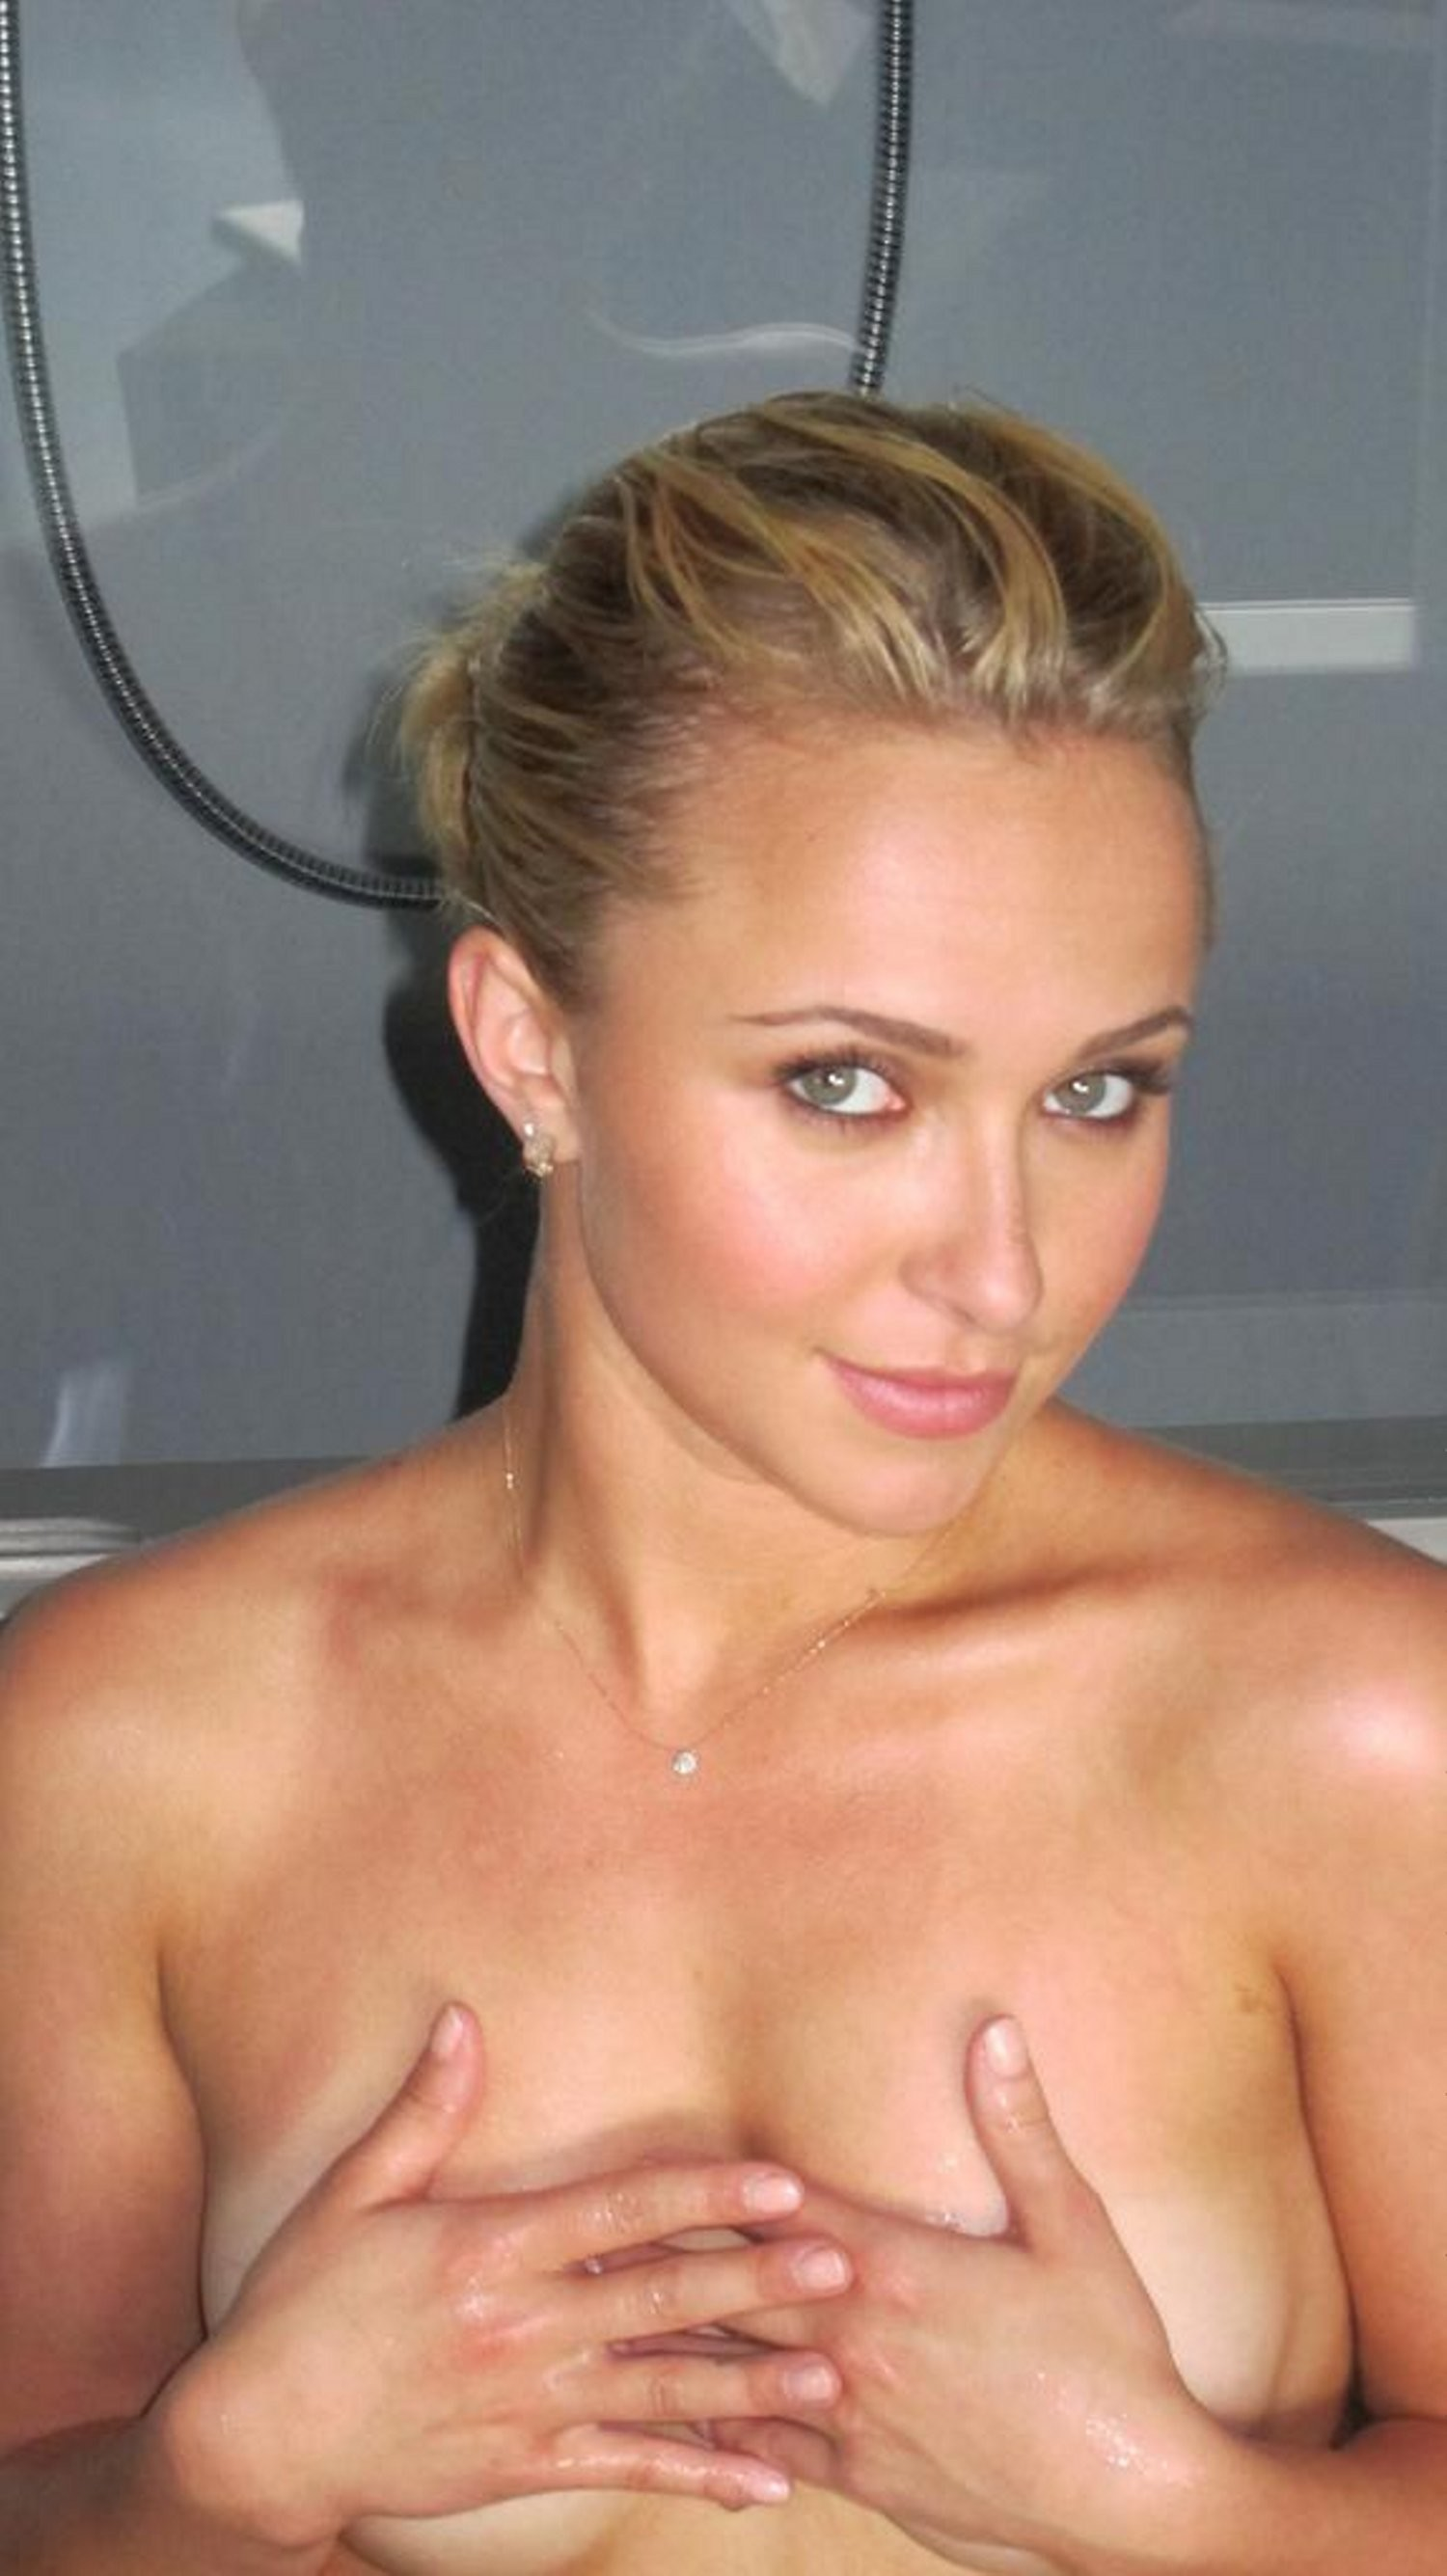 Not hayden panettiere cleavage for